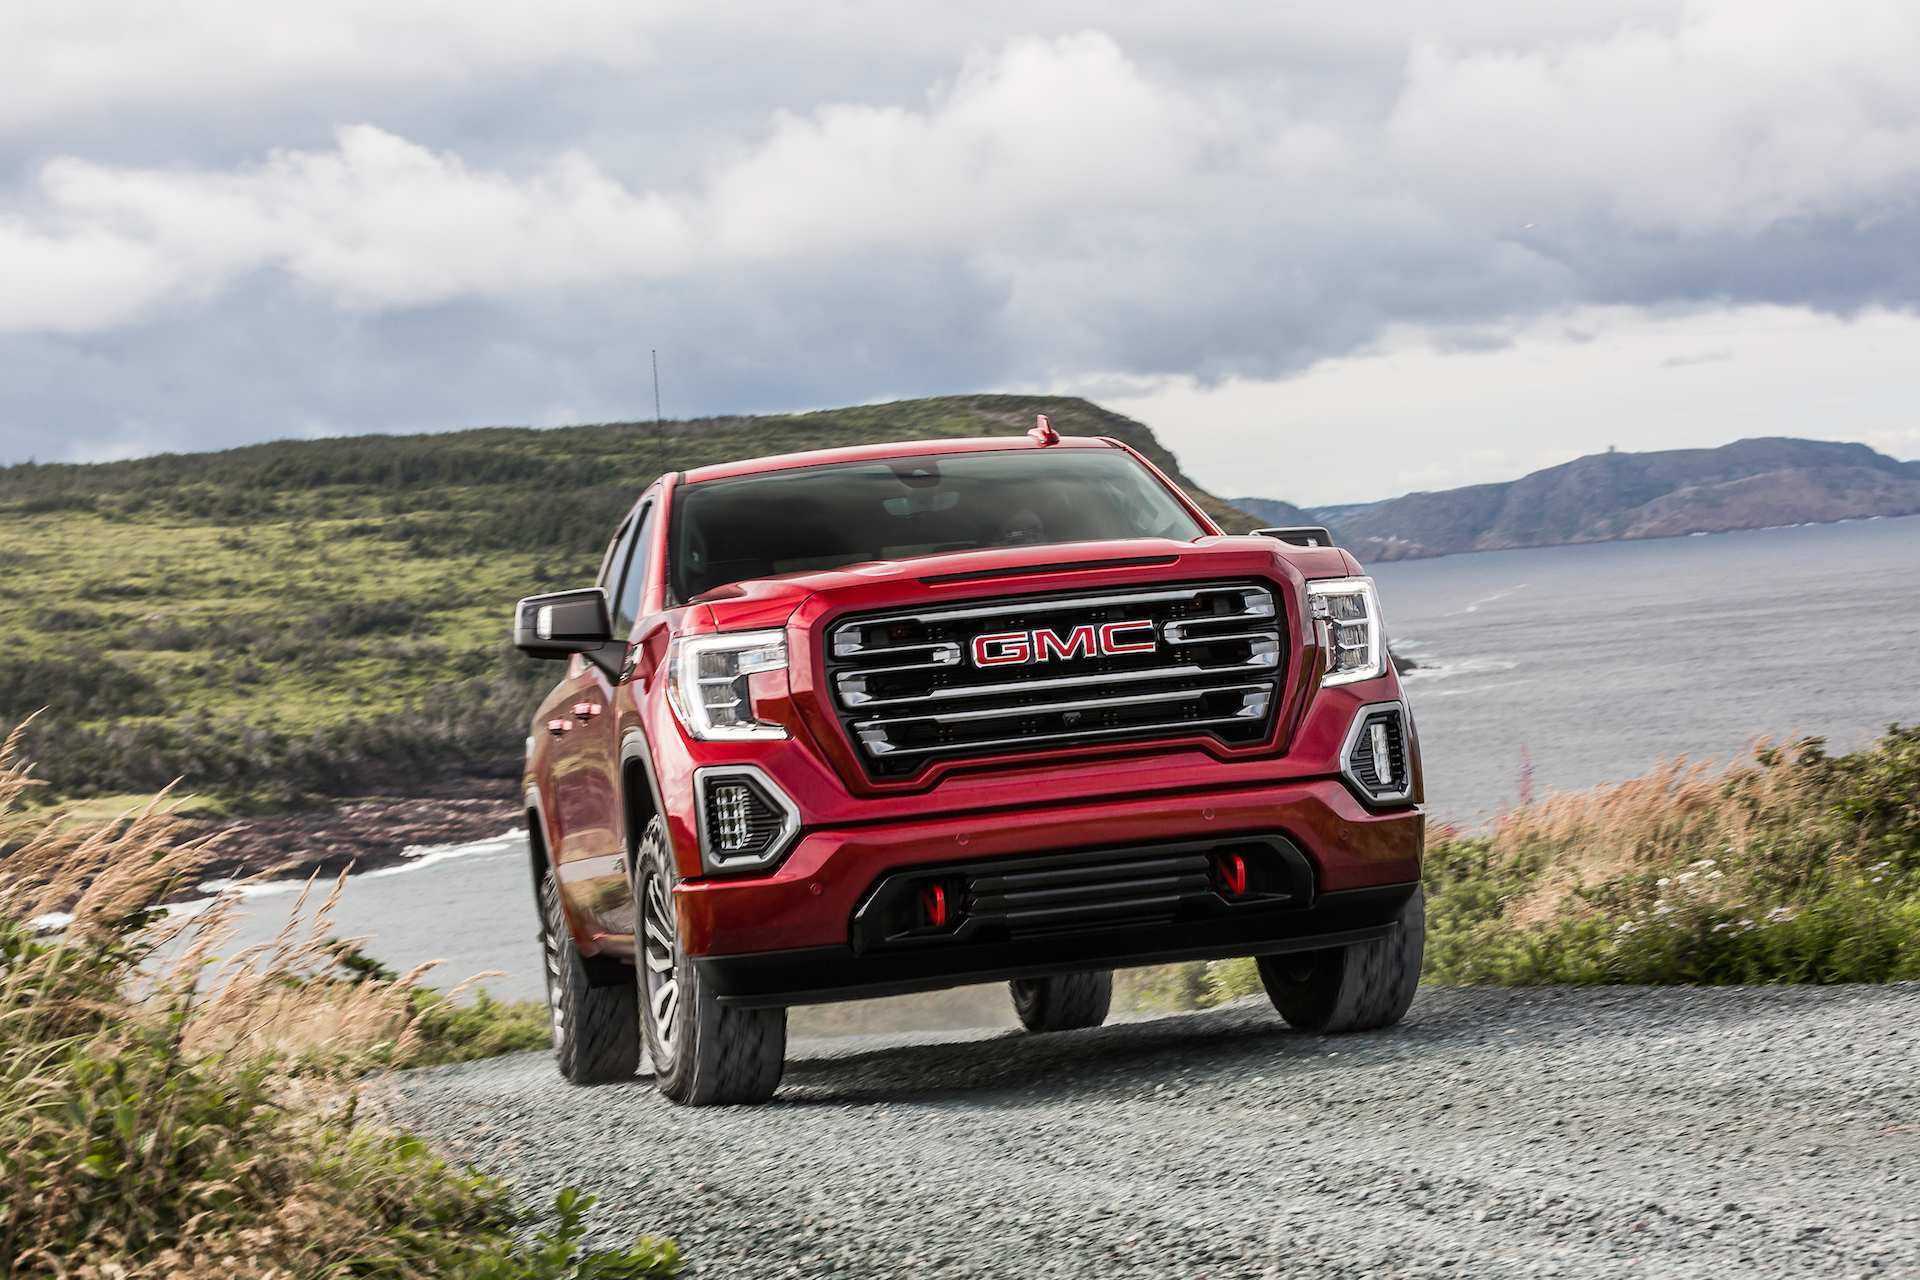 11 Gallery of New Gmc 2019 Sierra 1500 First Drive Overview for New Gmc 2019 Sierra 1500 First Drive